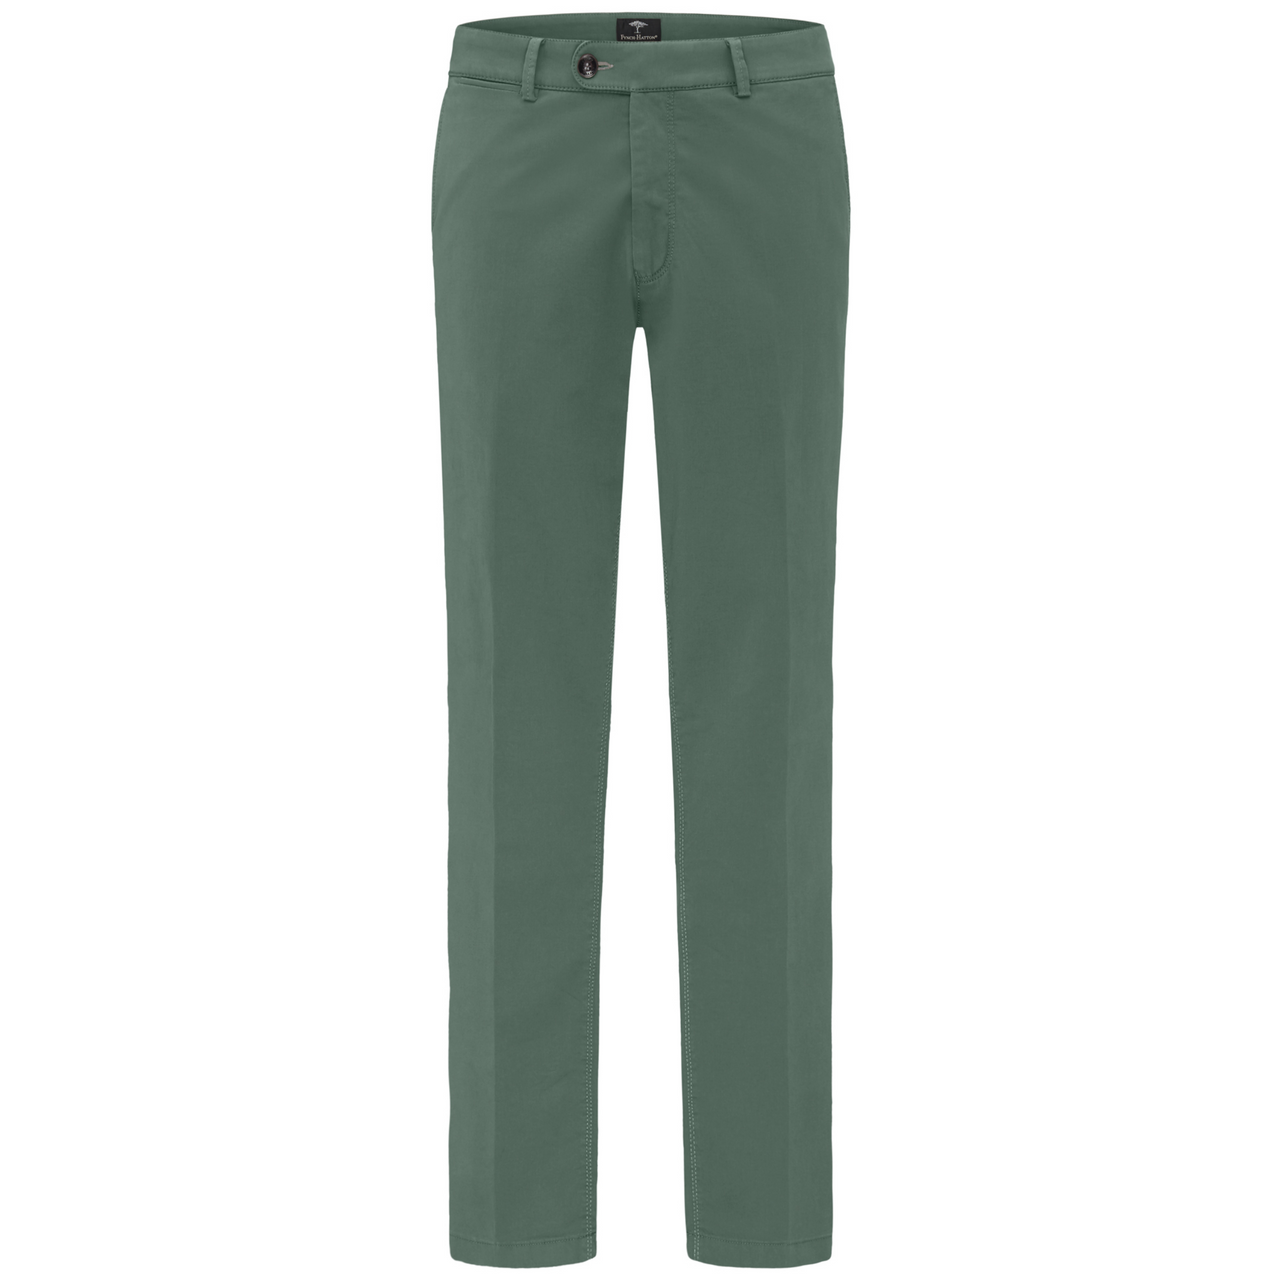 Fynch Hatton Trousers Zambia Pima Power stretch 1120-2805 Casual Fit - Green